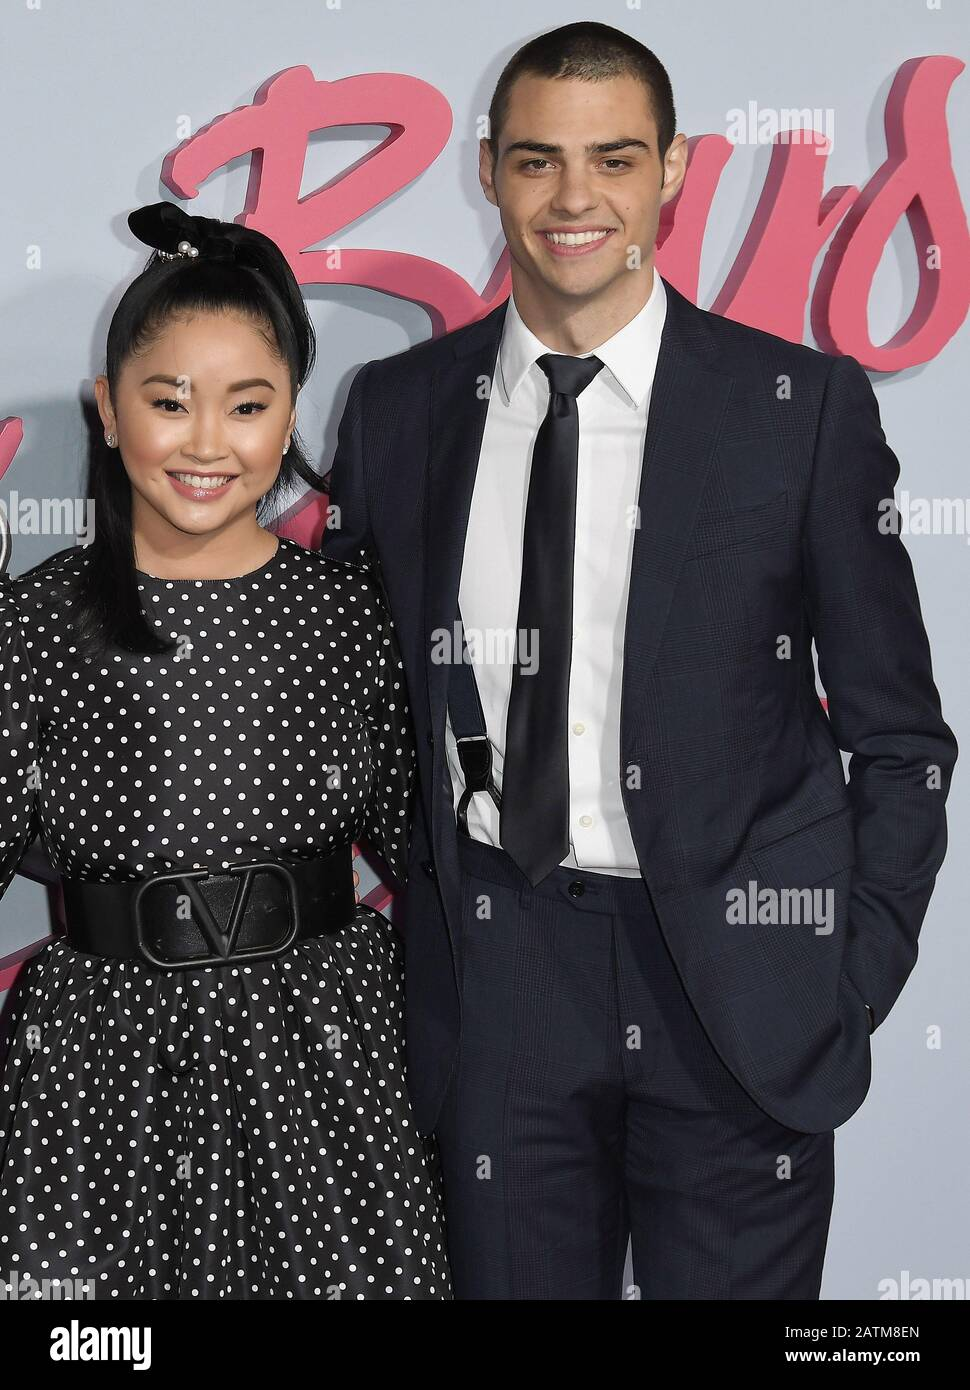 Hollywood California Usa 03rd Feb 2020 L R Lana Condor And Noah Centineo At The Netflix S To All The Boys P S I Still Love You Premiere Held At The Egyptian Theatre In Hollywood